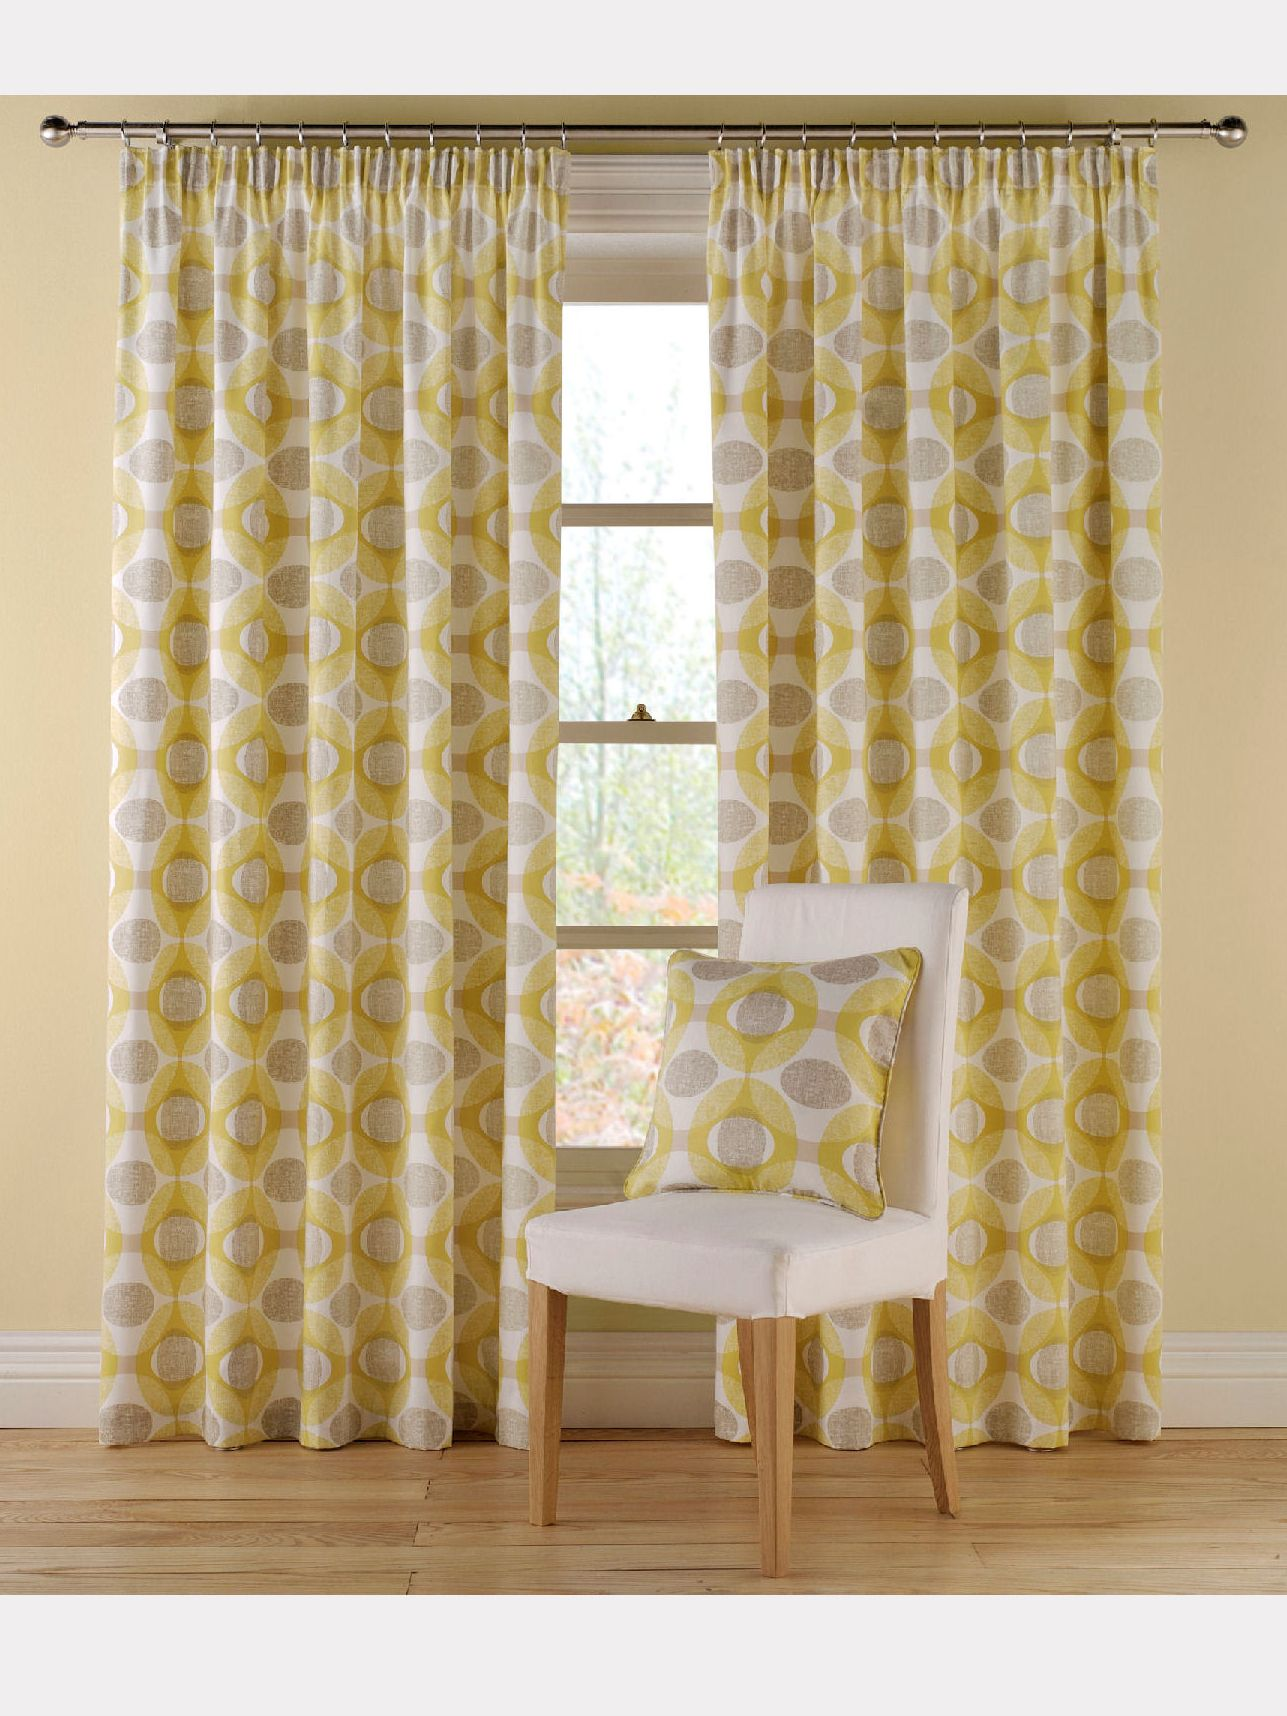 Olympic gold curtain range